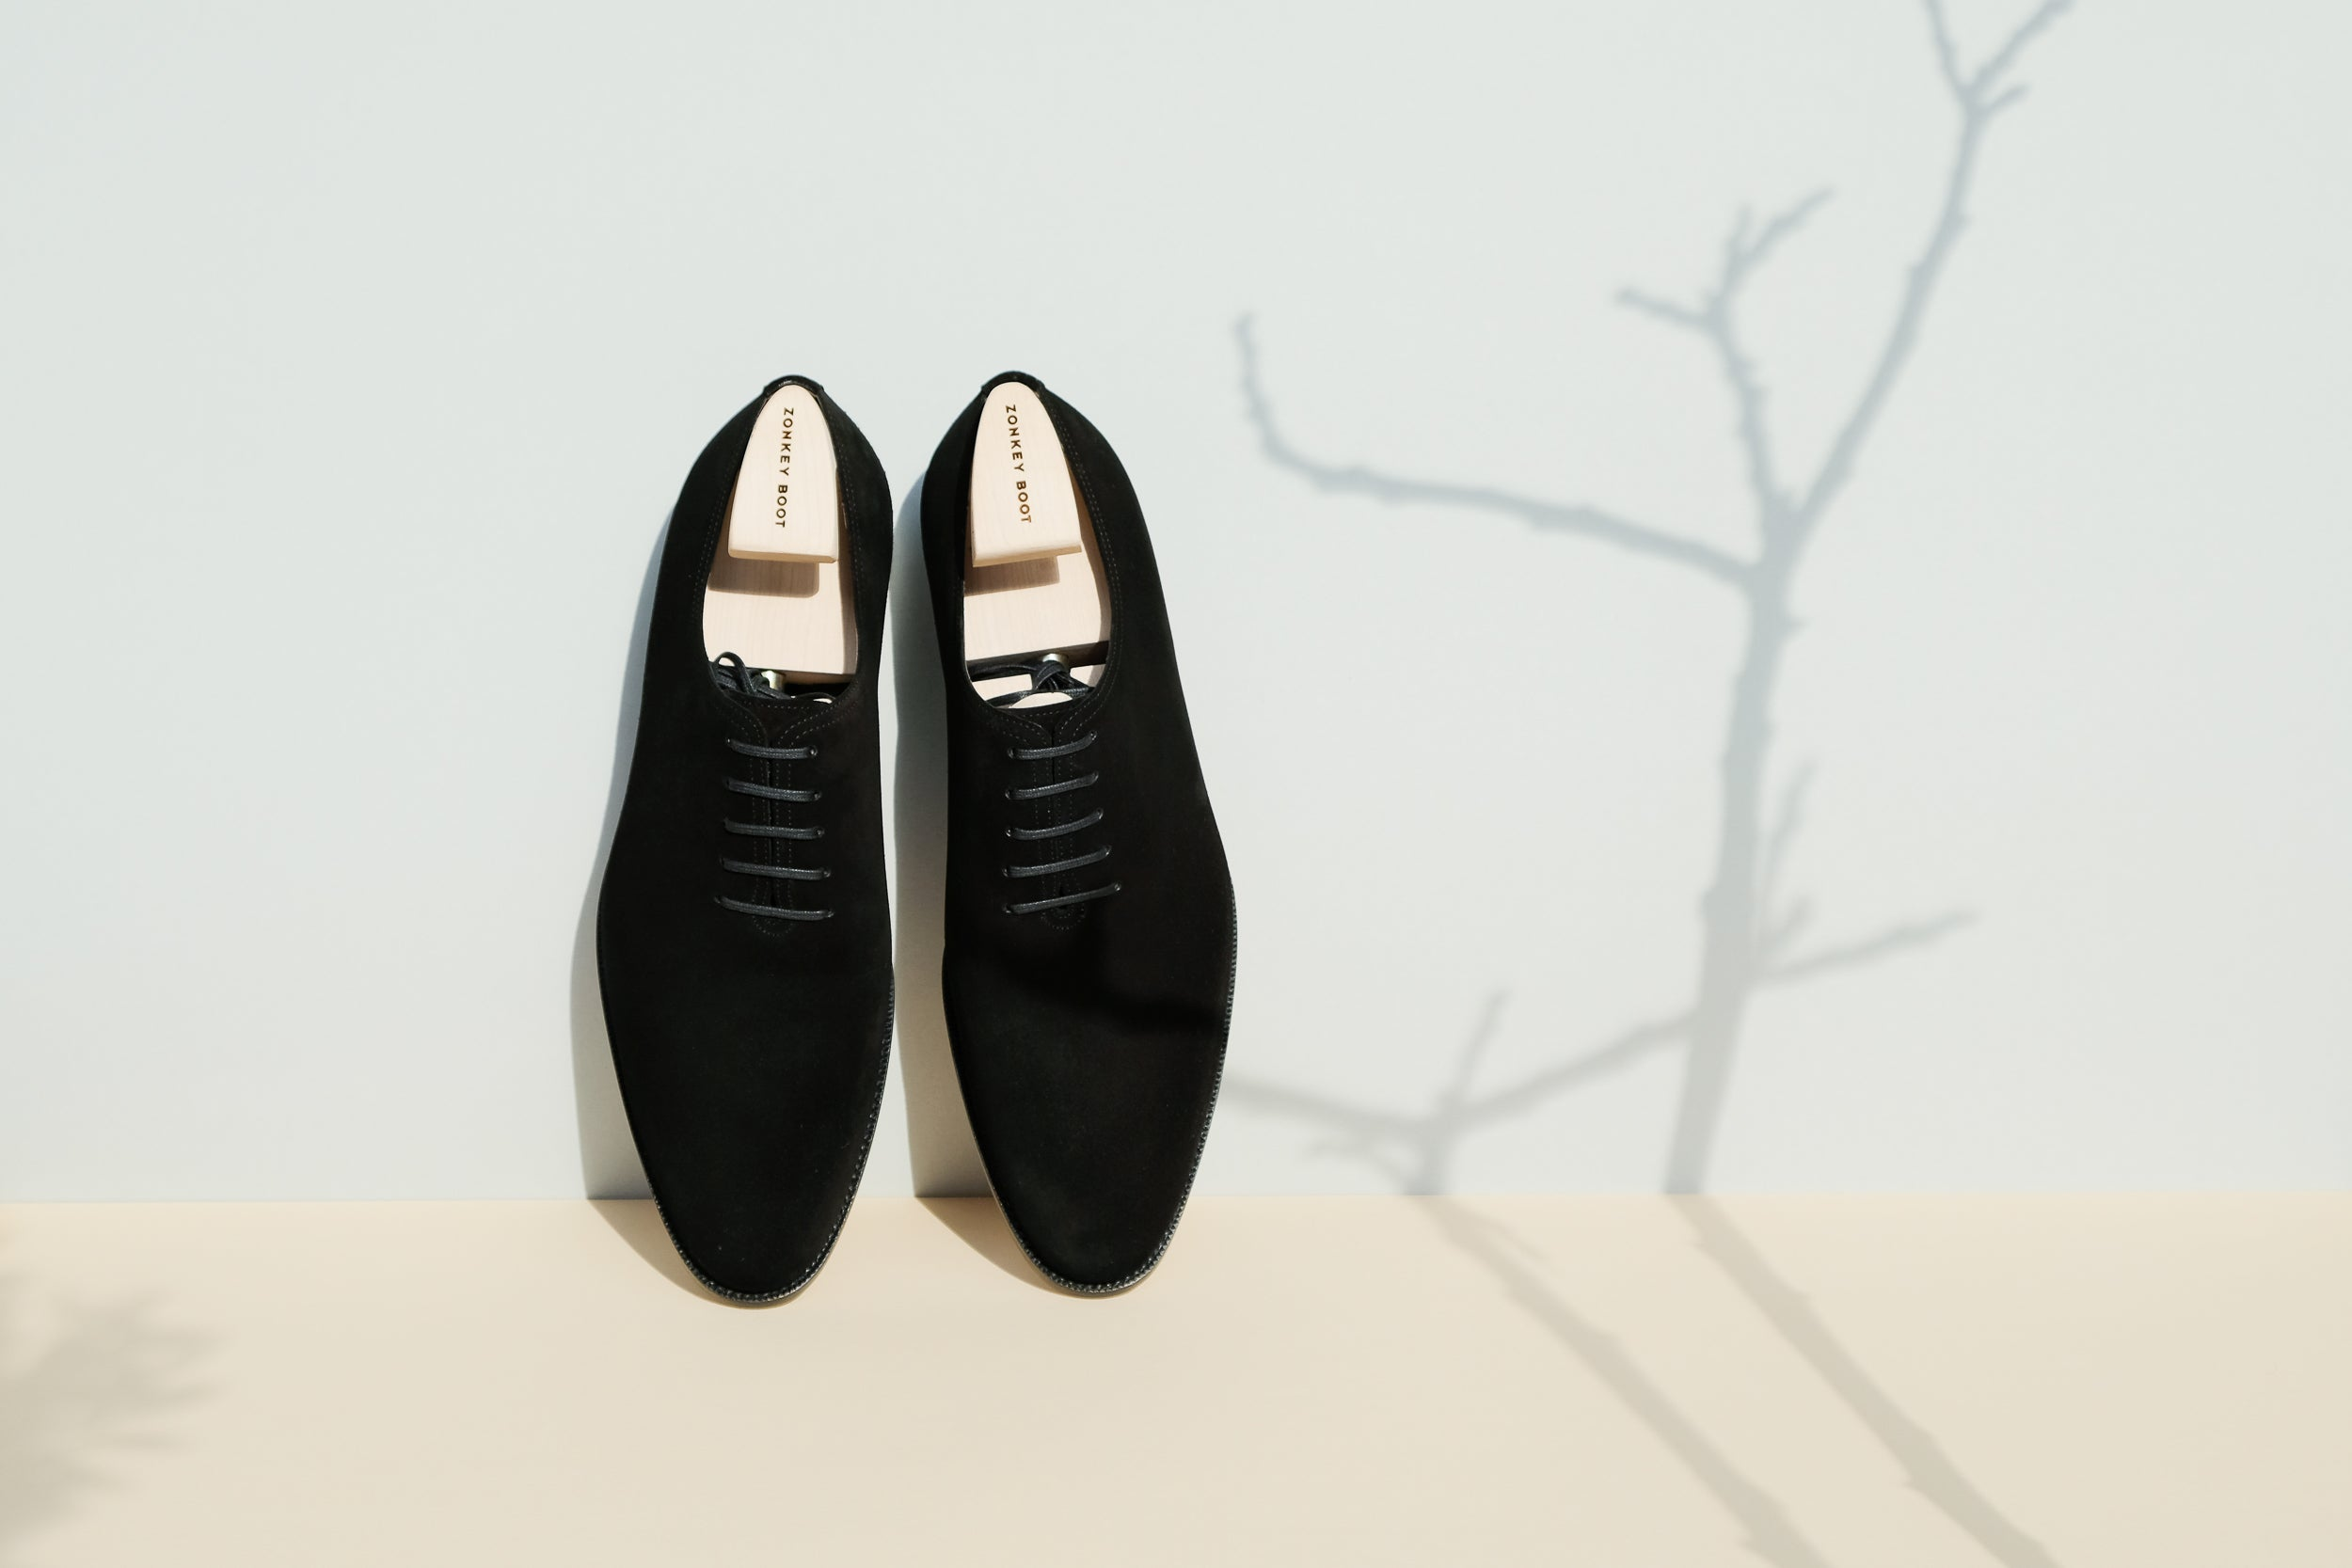 Zonkey Boot hand welted wholecut oxfords from black suede